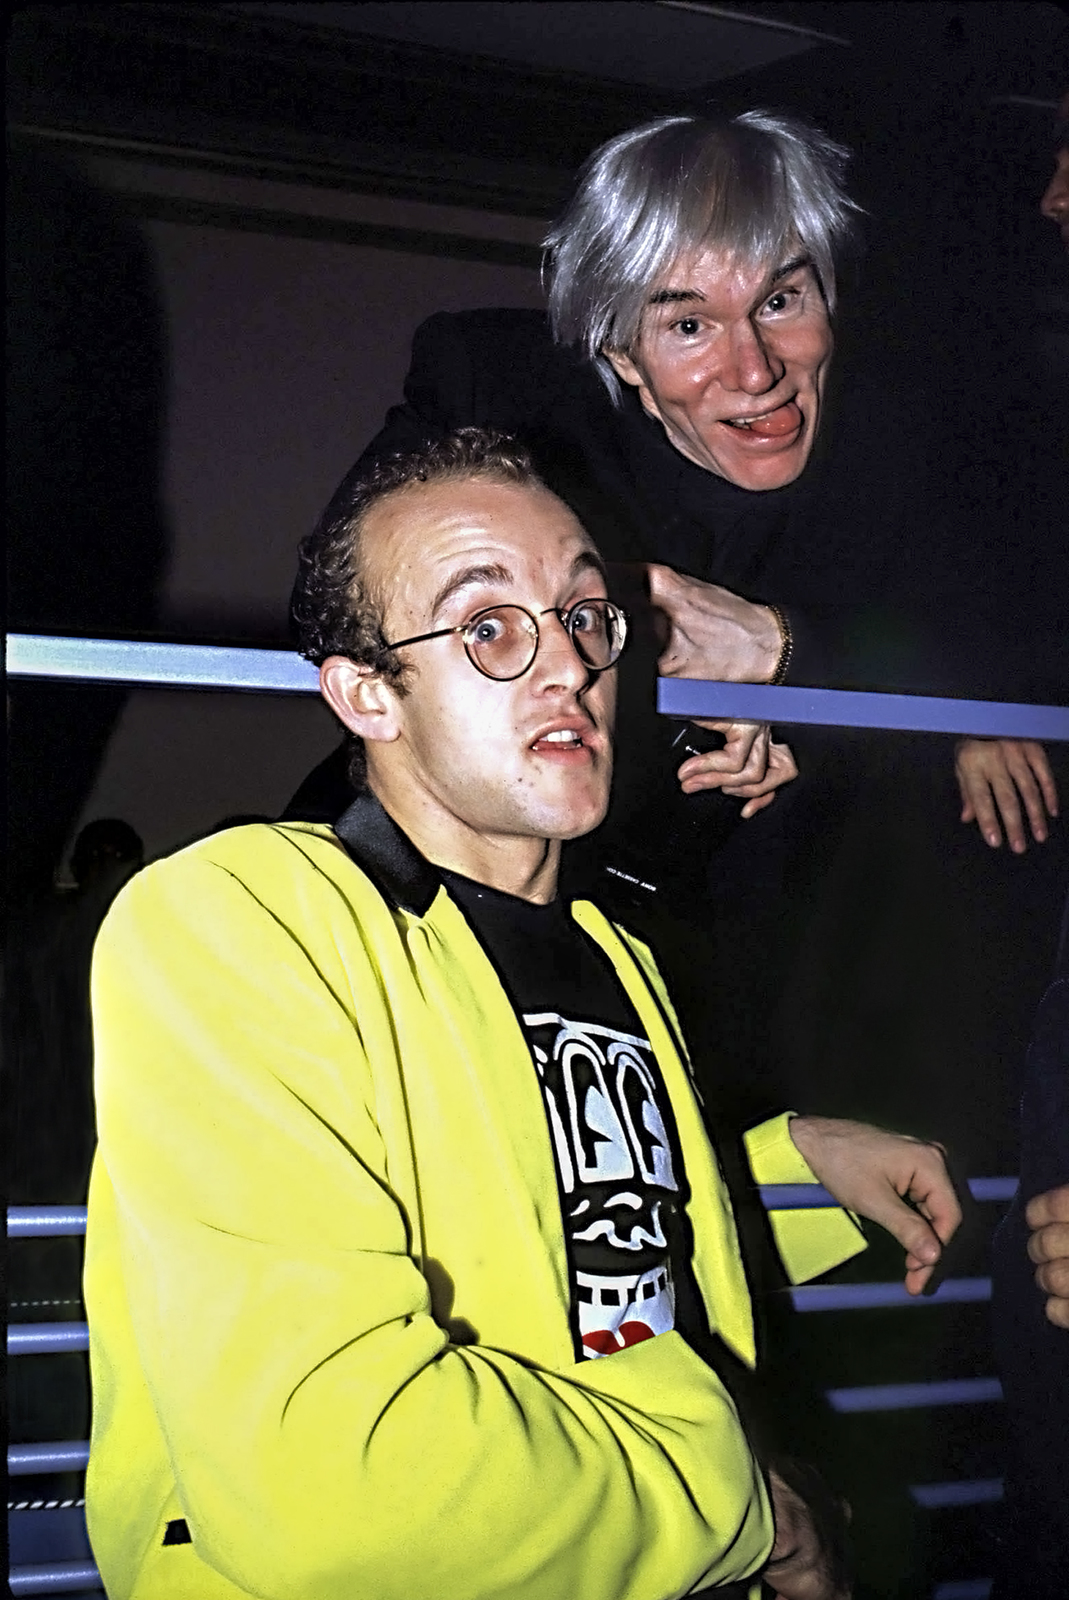 Primary image for Keith Haring and Andy Warhol, an Archival Print